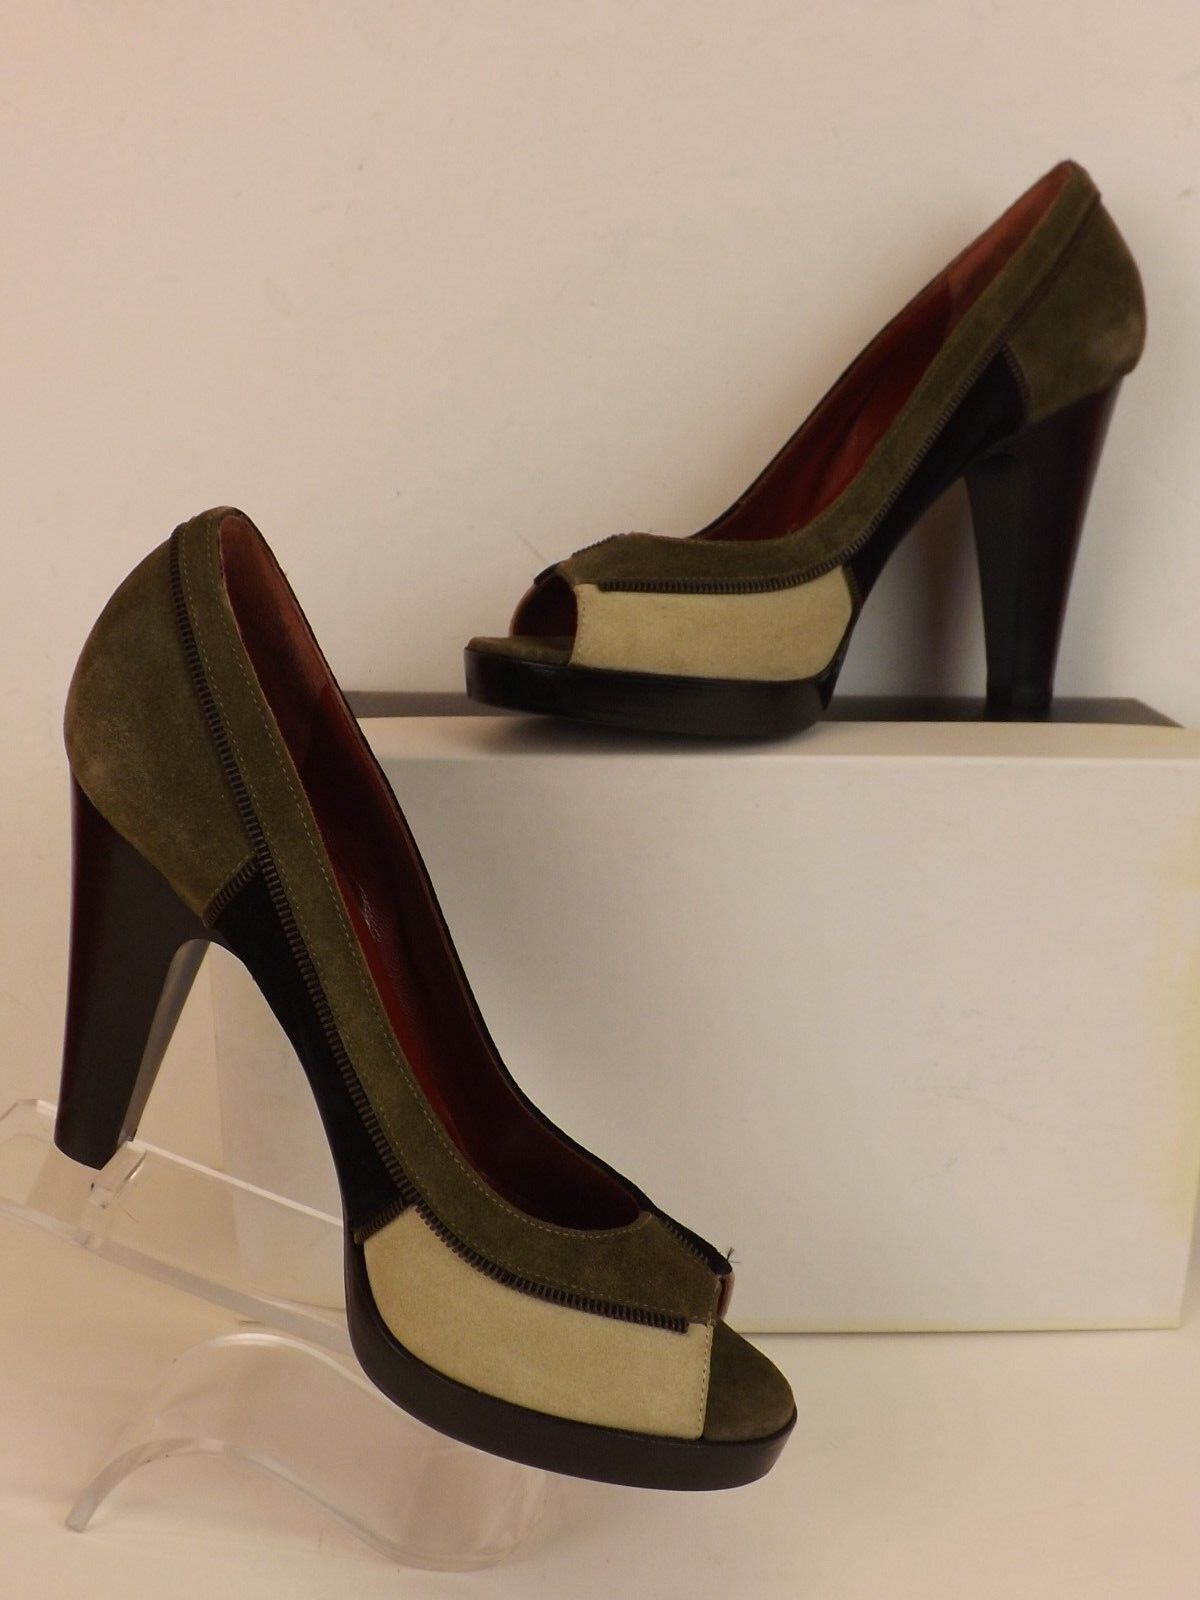 NEW TOE MARC BY MARC JACOBS COLOR BLOCK SUEDE PEEP TOE NEW PLATFORM PUMPS 37.5 ITALY 6221d0